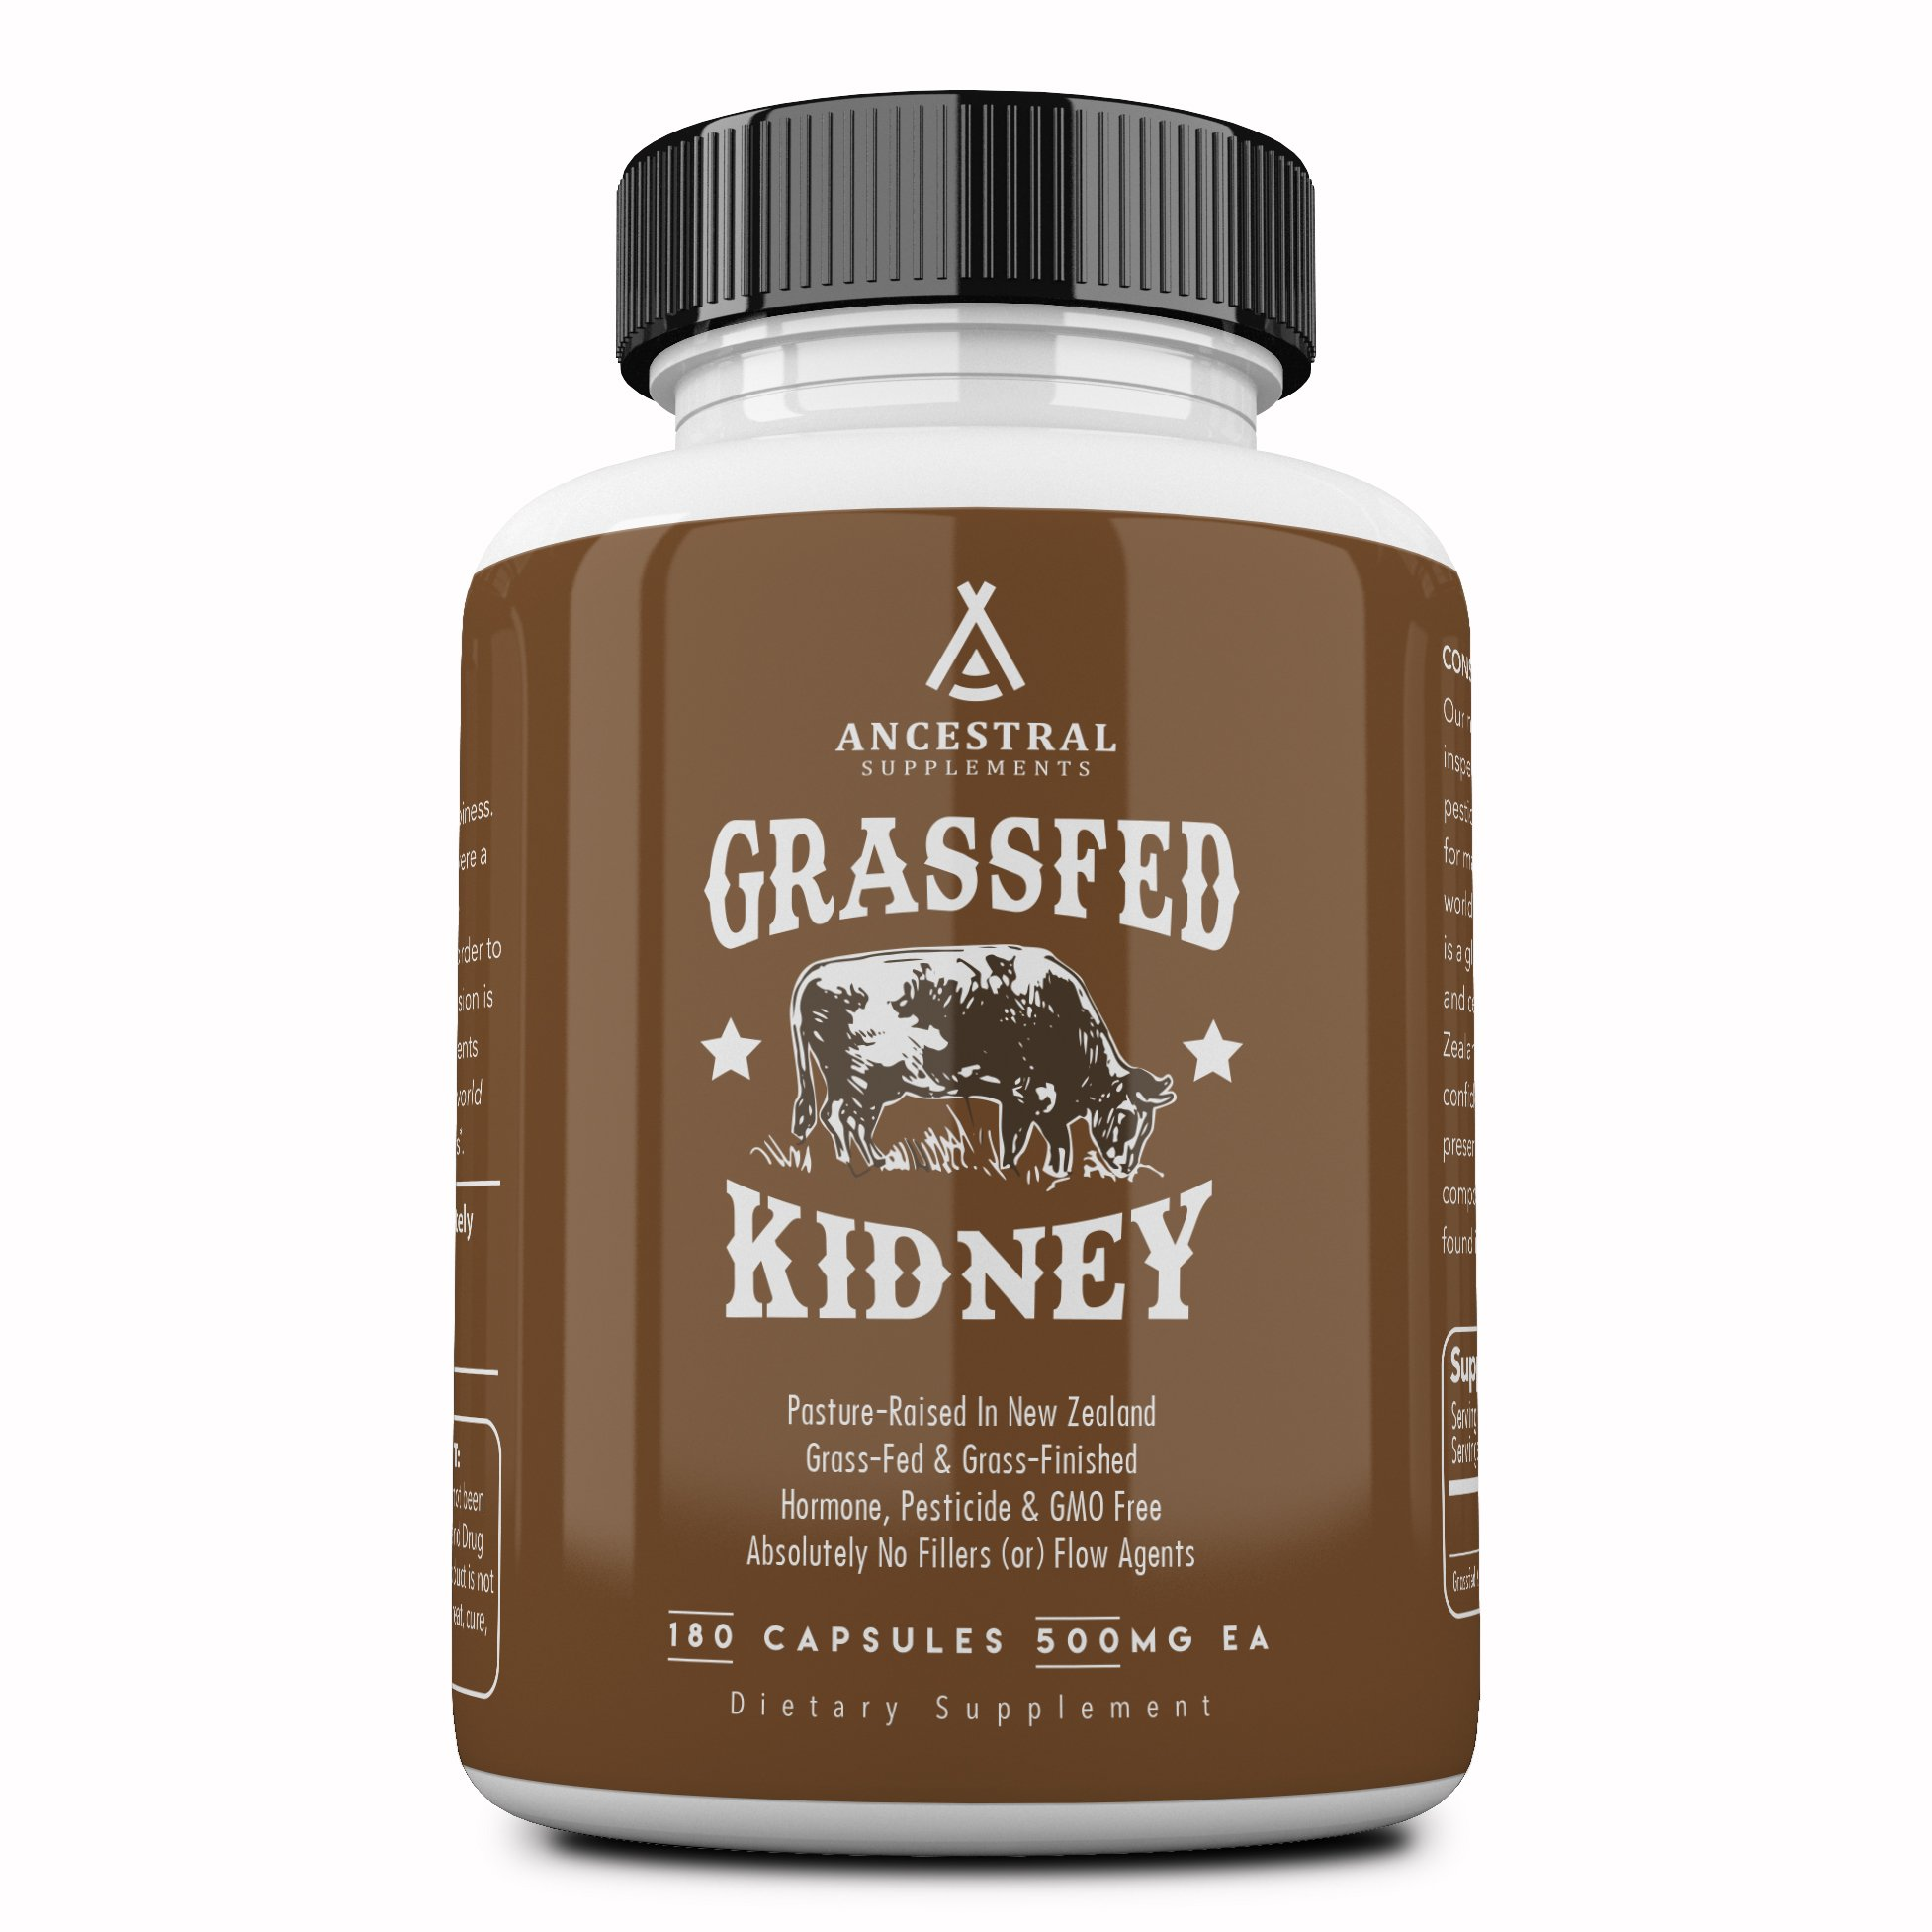 Ancestral Supplements Kidney (High in Selenium, B12, DAO) - Supports Kidney, Urinary, Thyroid, Histamine Health (180 Capsules) by Ancestral Supplements